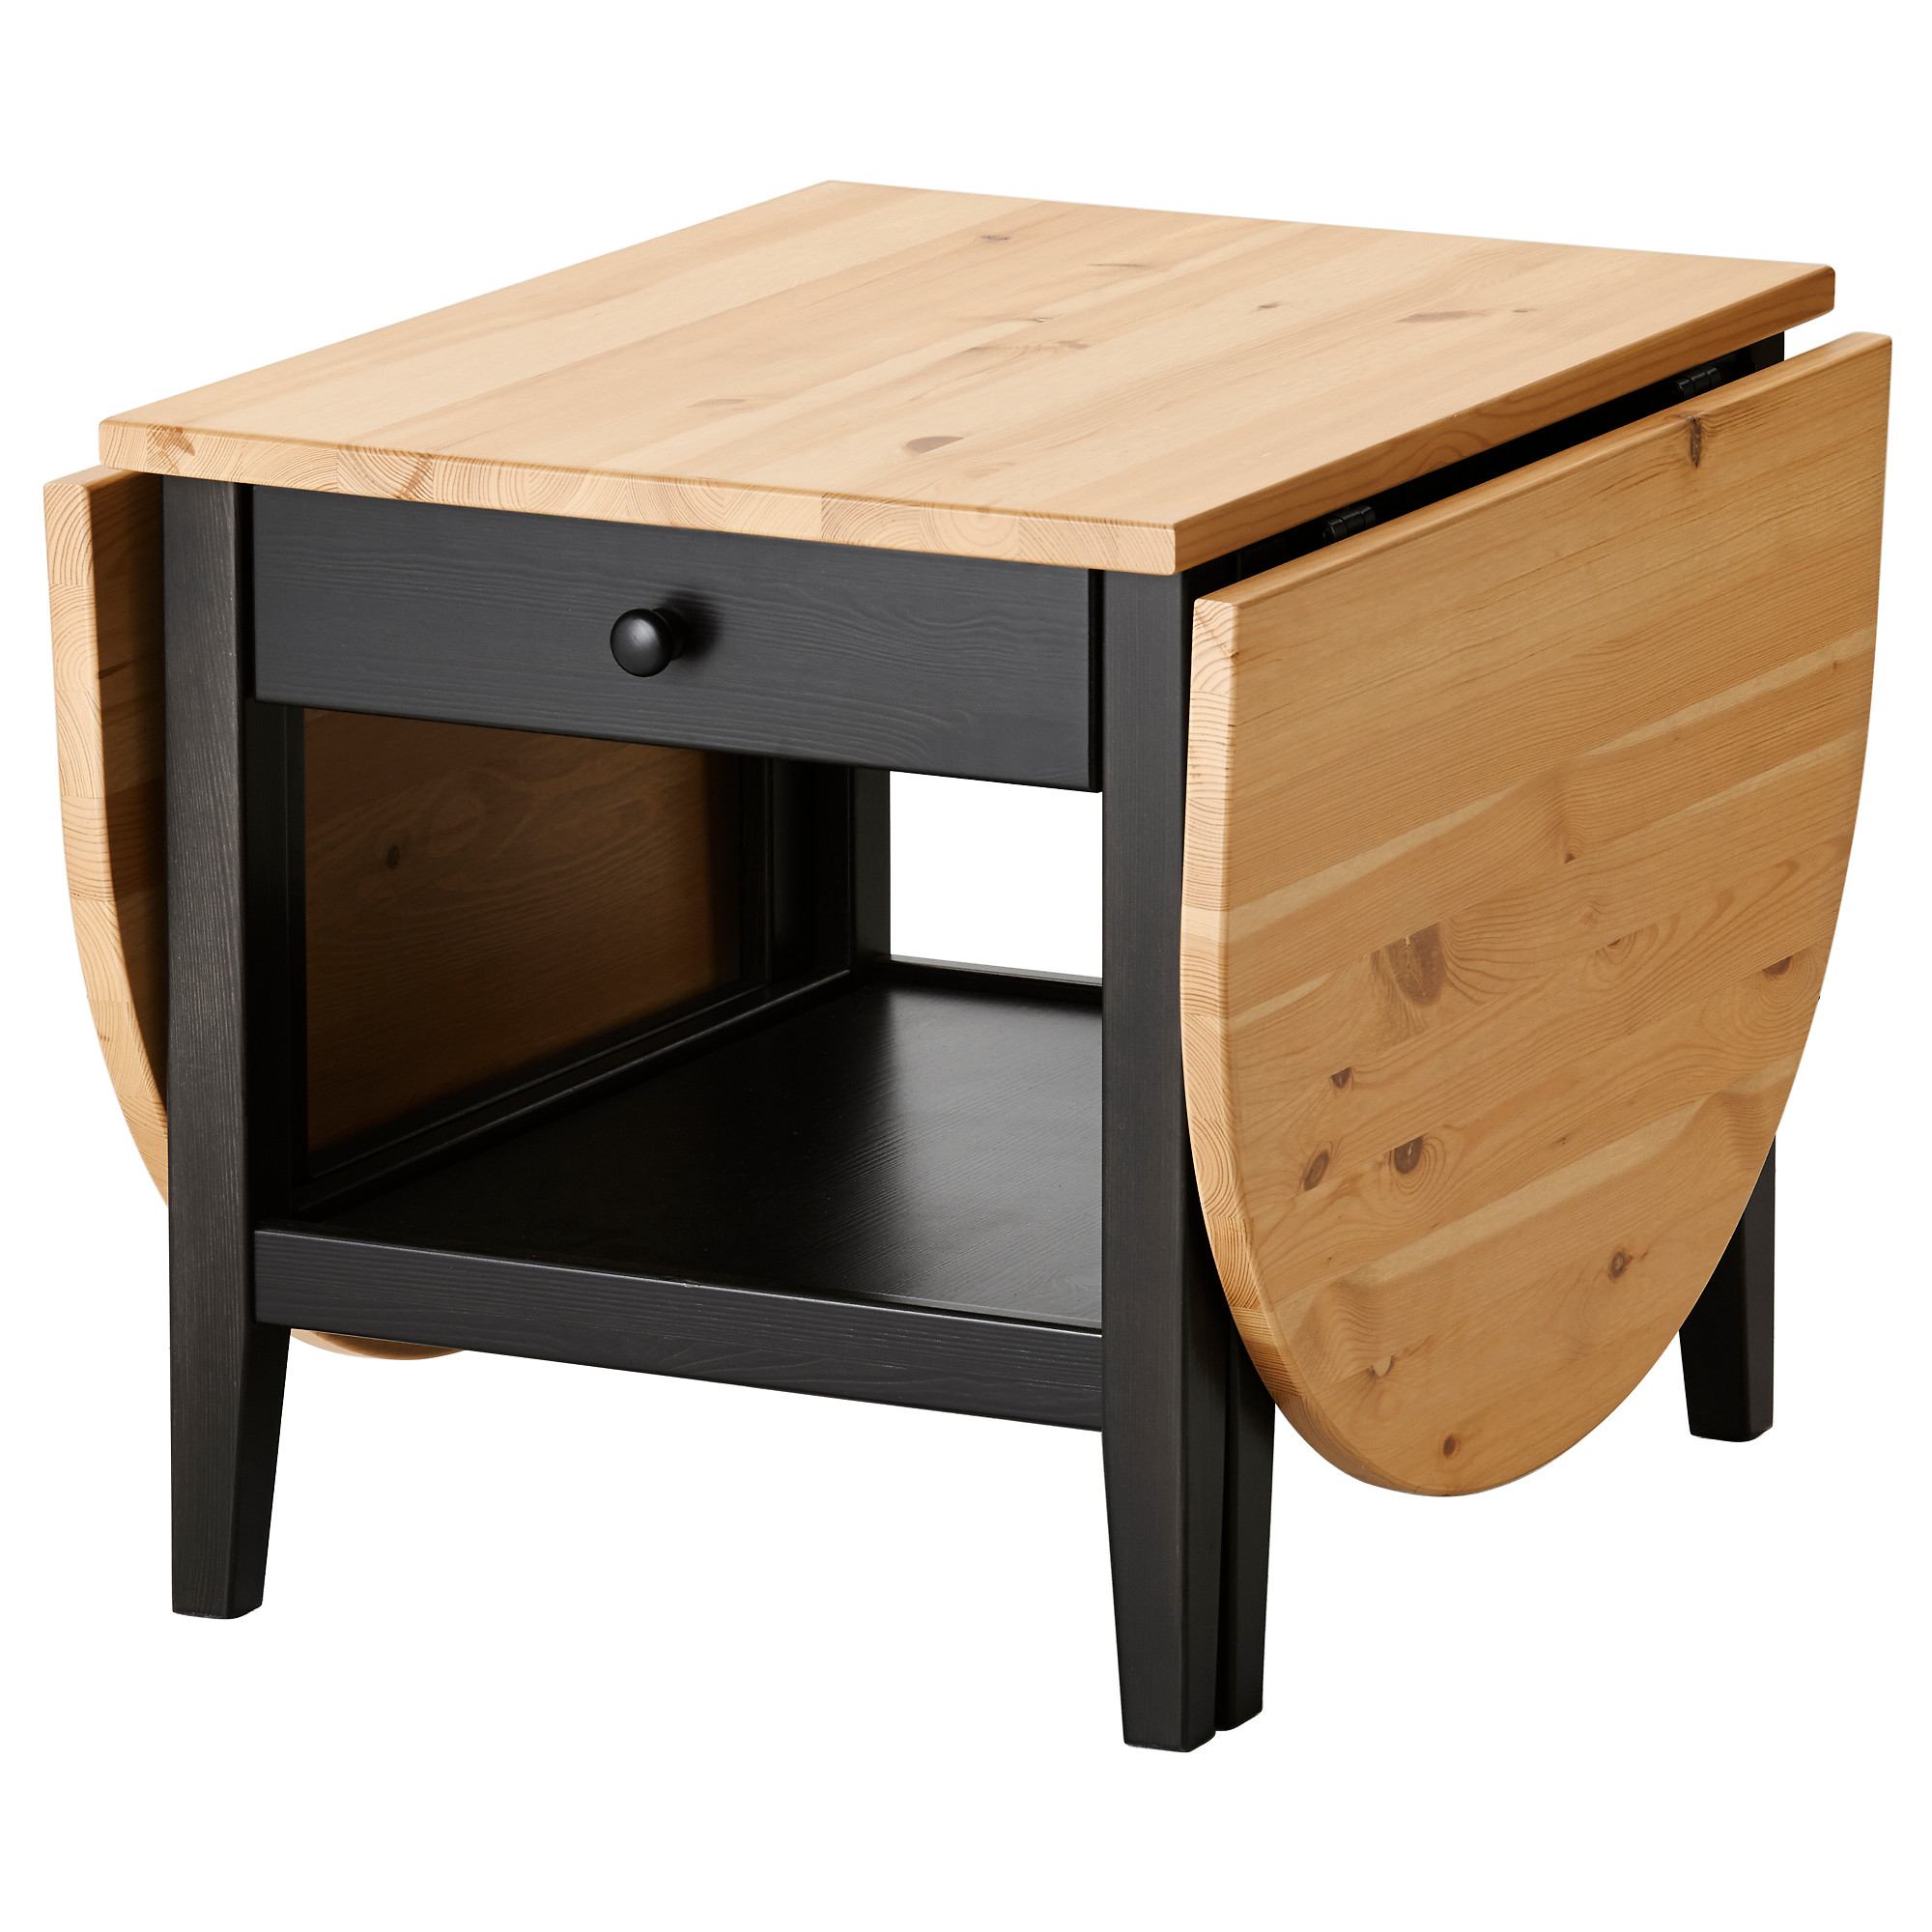 ARKELSTORP coffee table, black Min. length: 19 5/8